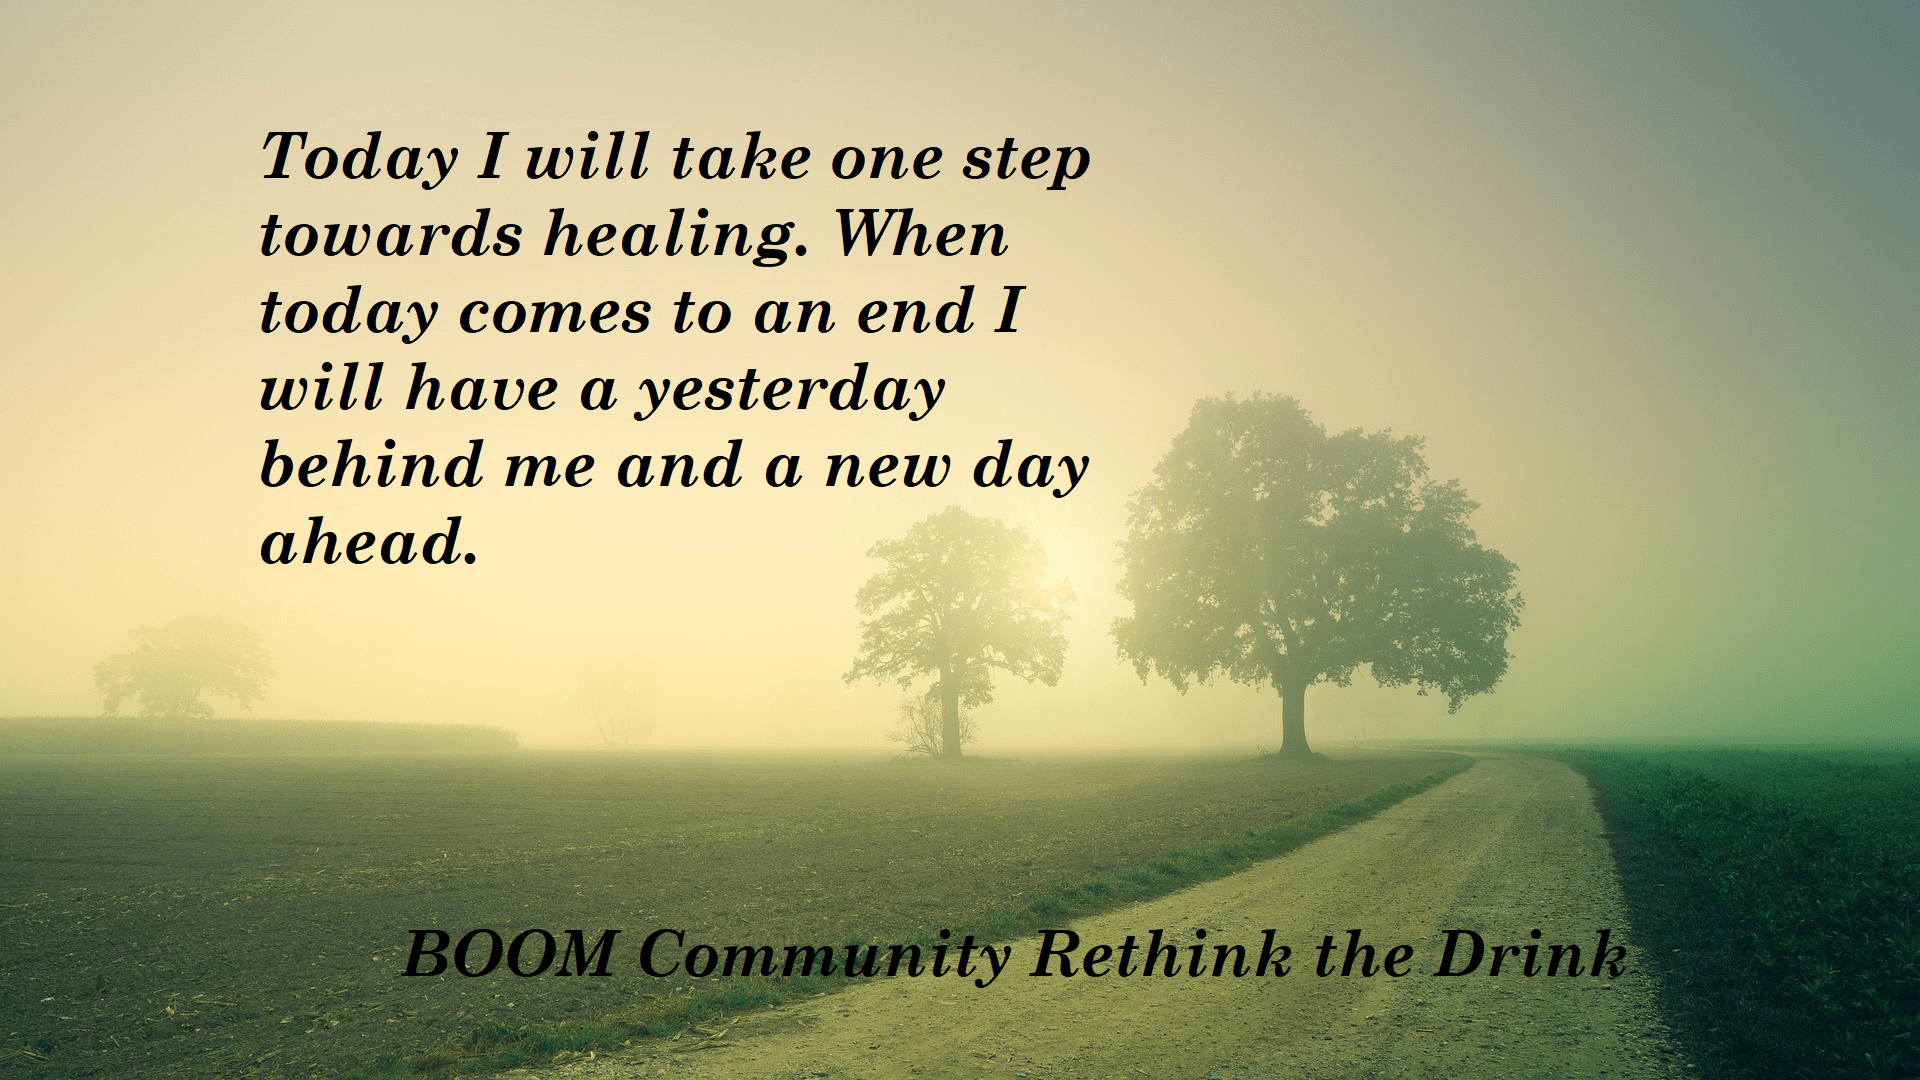 Boom Community Rethink the Drink